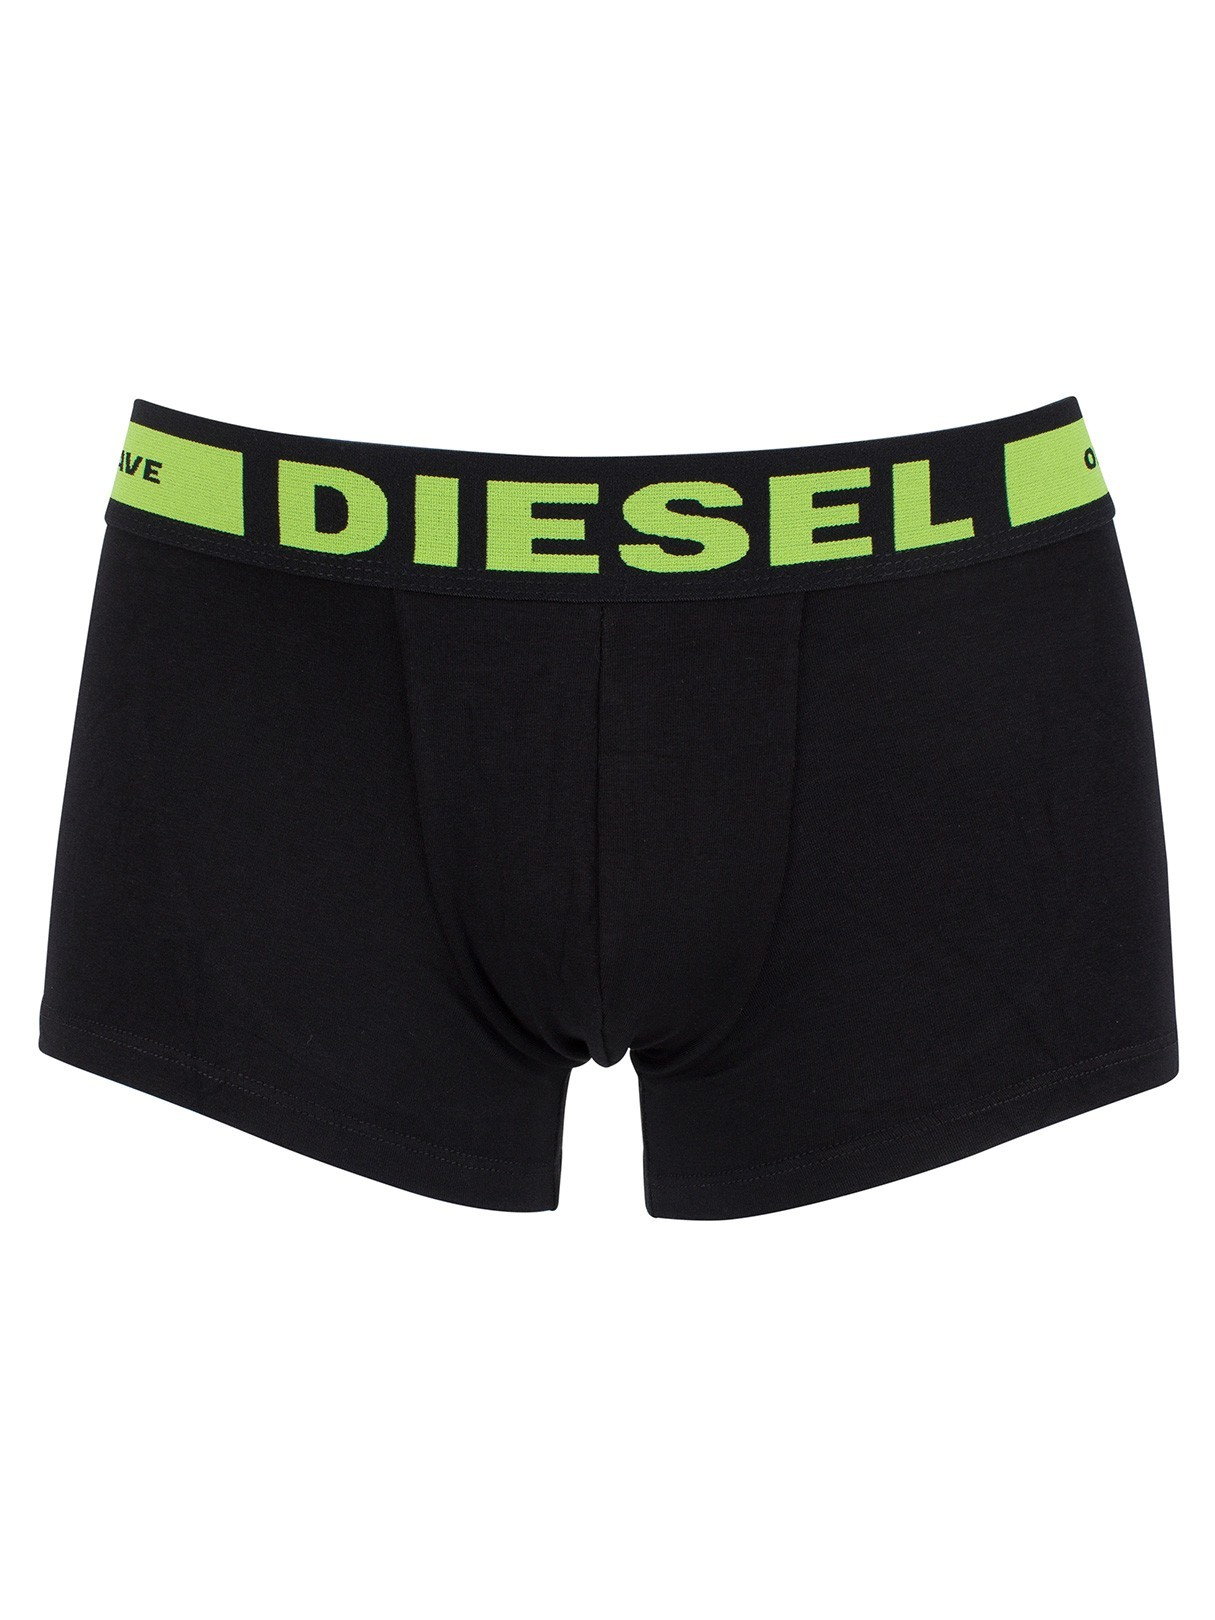 Diesel 3 Pack Seasonal Boxer Logo Trunks - Black